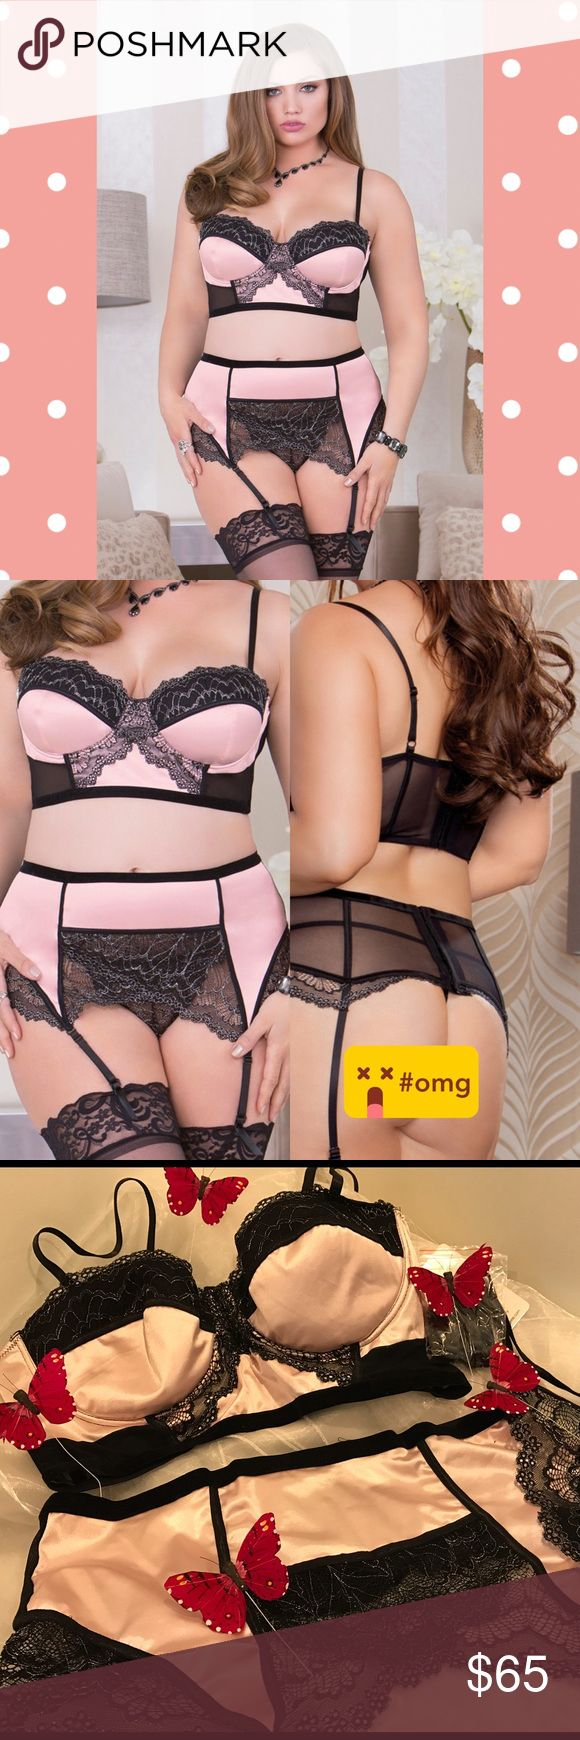 "2x PINK BLACK PLUS SIZE 3pc lingerie set Pink and black lurex scallop LACE, microfiber and mesh two pc bra and garter belt set!   Underwire cups, scallop LACE trim, hook and eye back closures, removable garters and matching LACE g-string   Thigh highs not included but can be for $11  There is a darker version for all the gray black and silver dark color lovers!   1x: 16-18, bust 42""-45"", waist 34""-37"", hip 44""-46""  2x: 20-22, bust 46""-48"", waist 38""-40"", hip: 48""-50""    Plus size sleepwear…"